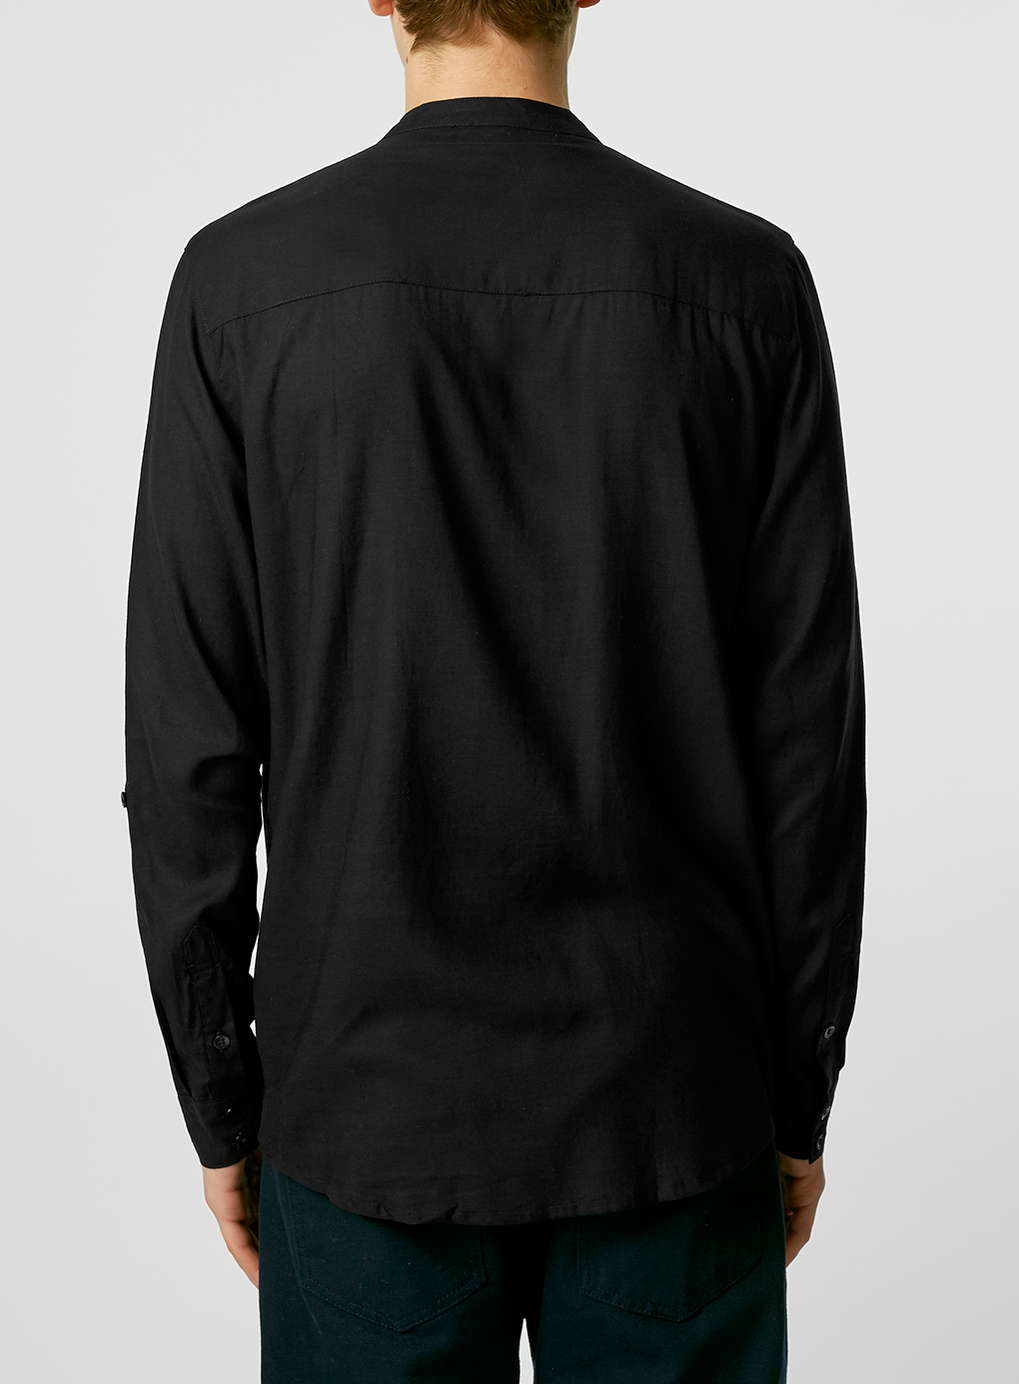 Topman Nana Judy Black Linen Shirt in Black for Men | Lyst